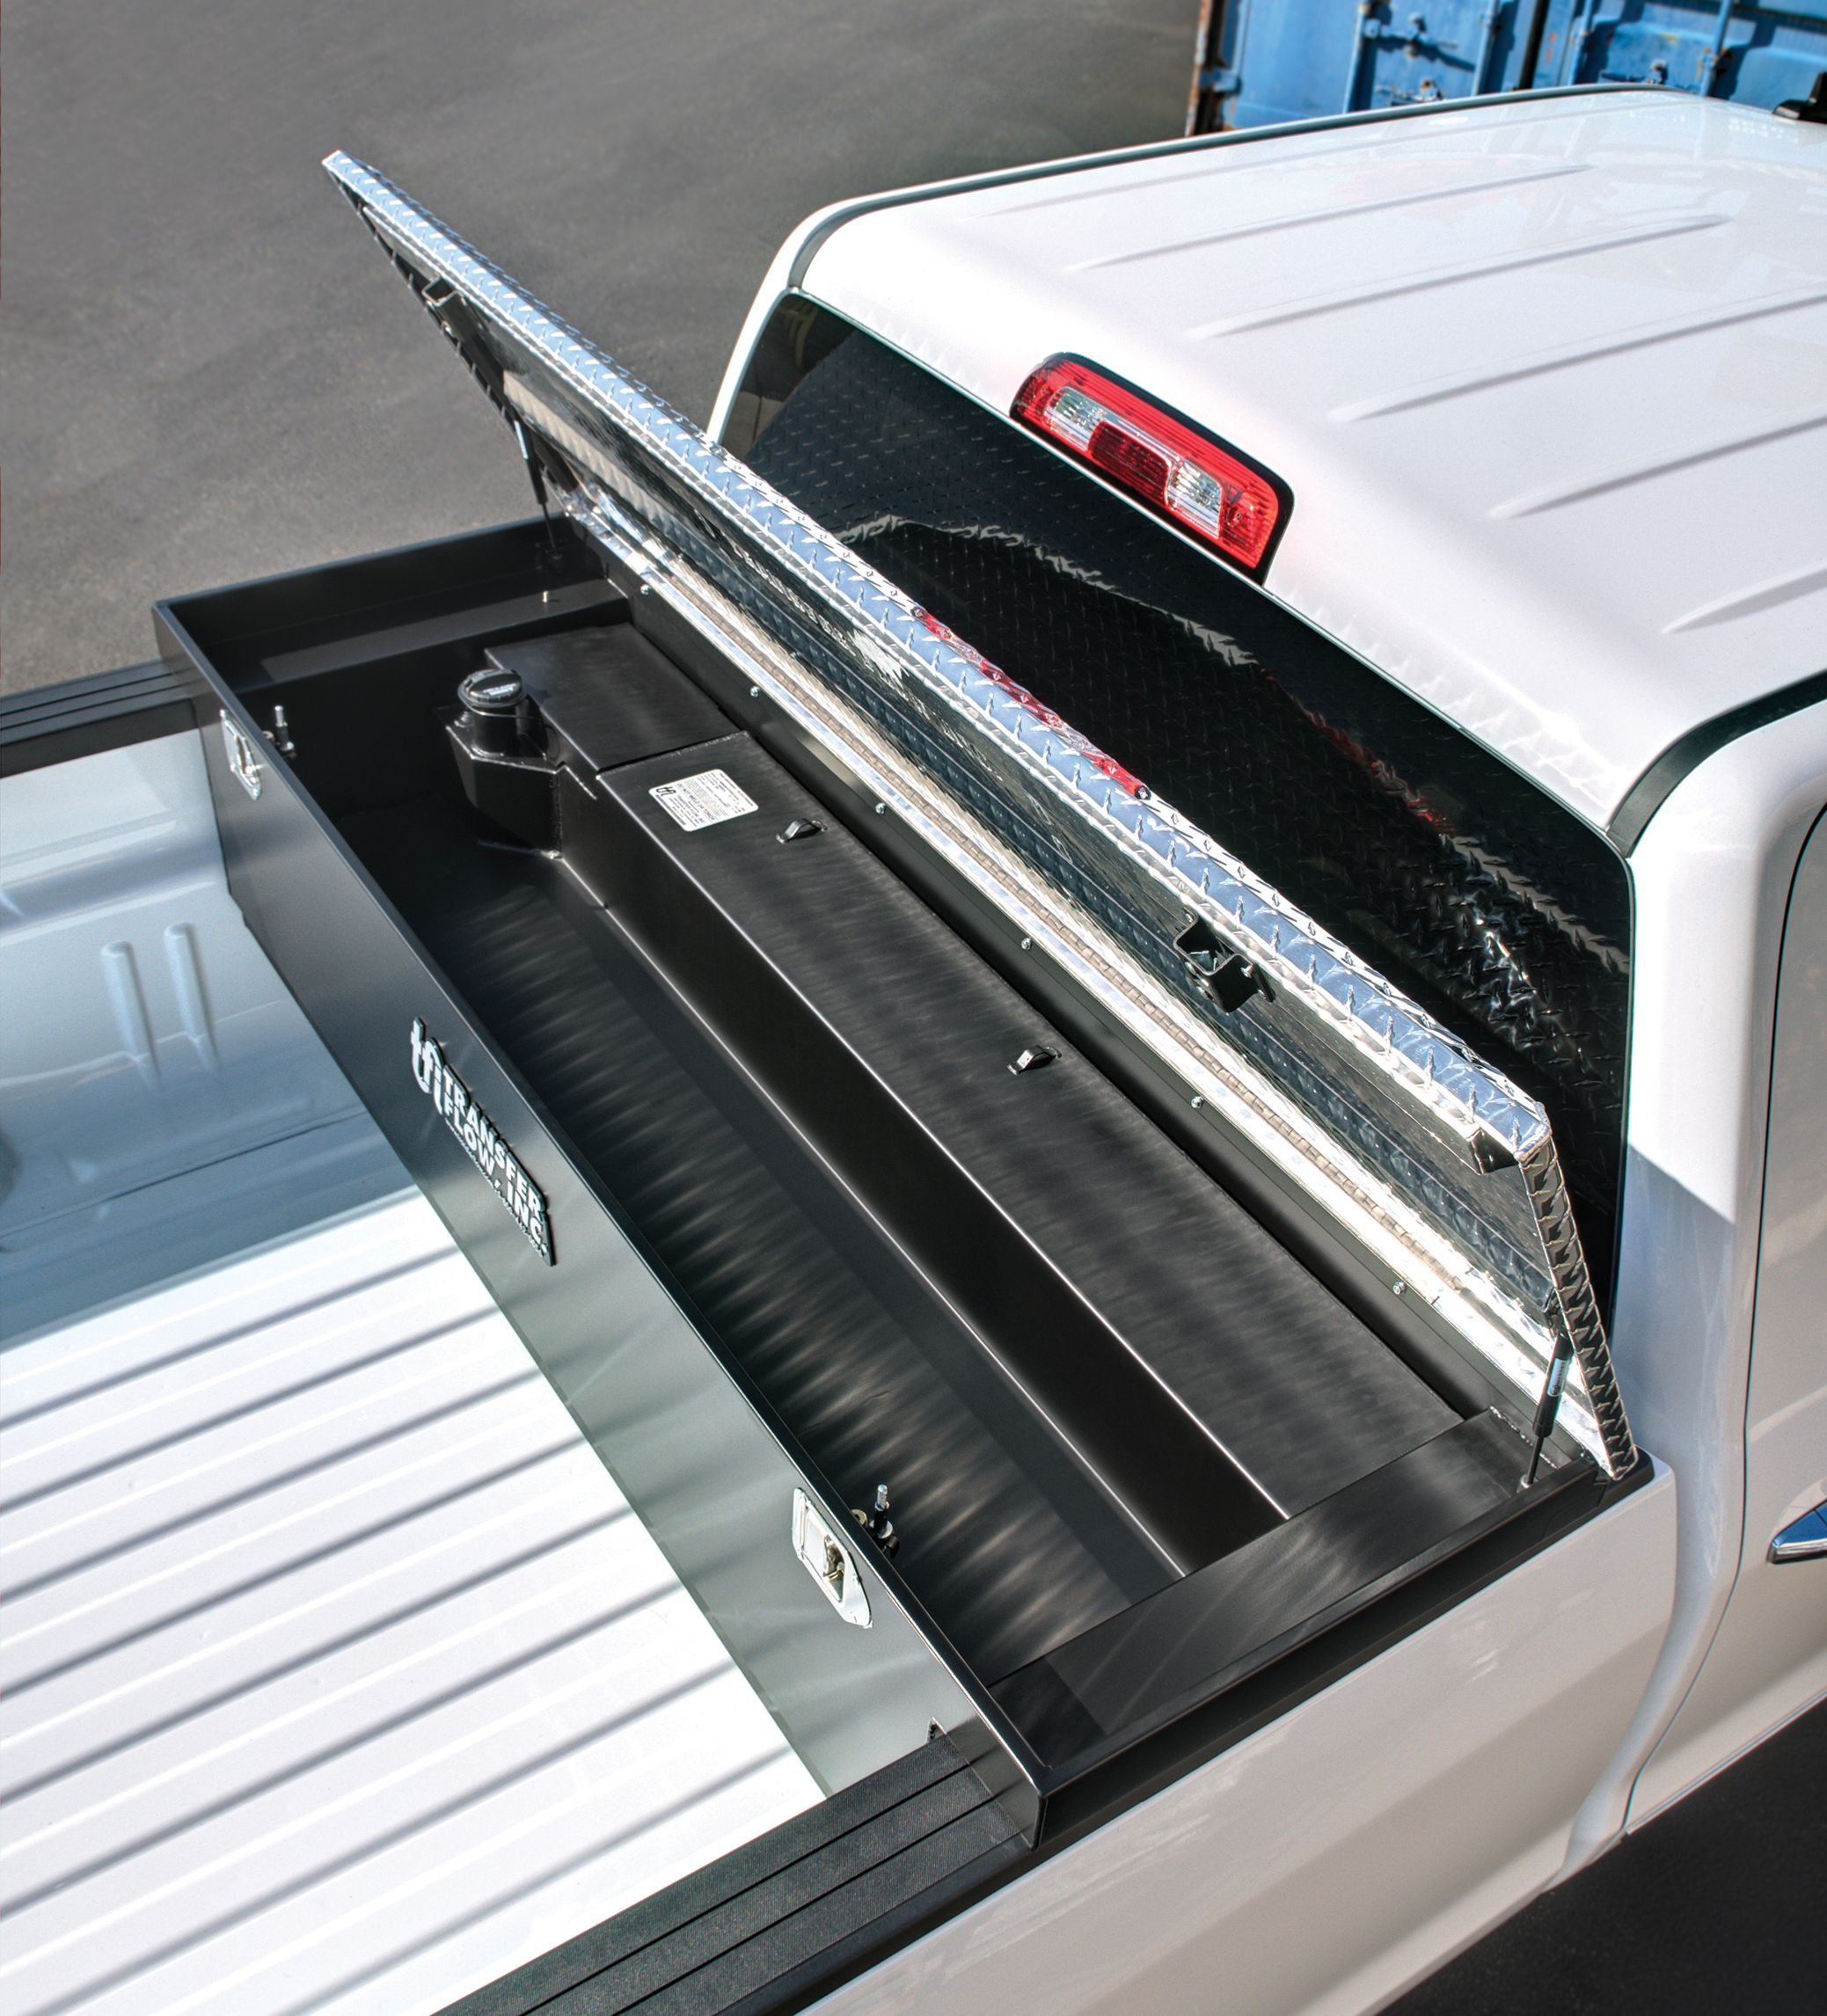 Transfer flow s new toolbox and fuel tank combo has an adjustable storage box to custom fit the depth of your truck bed